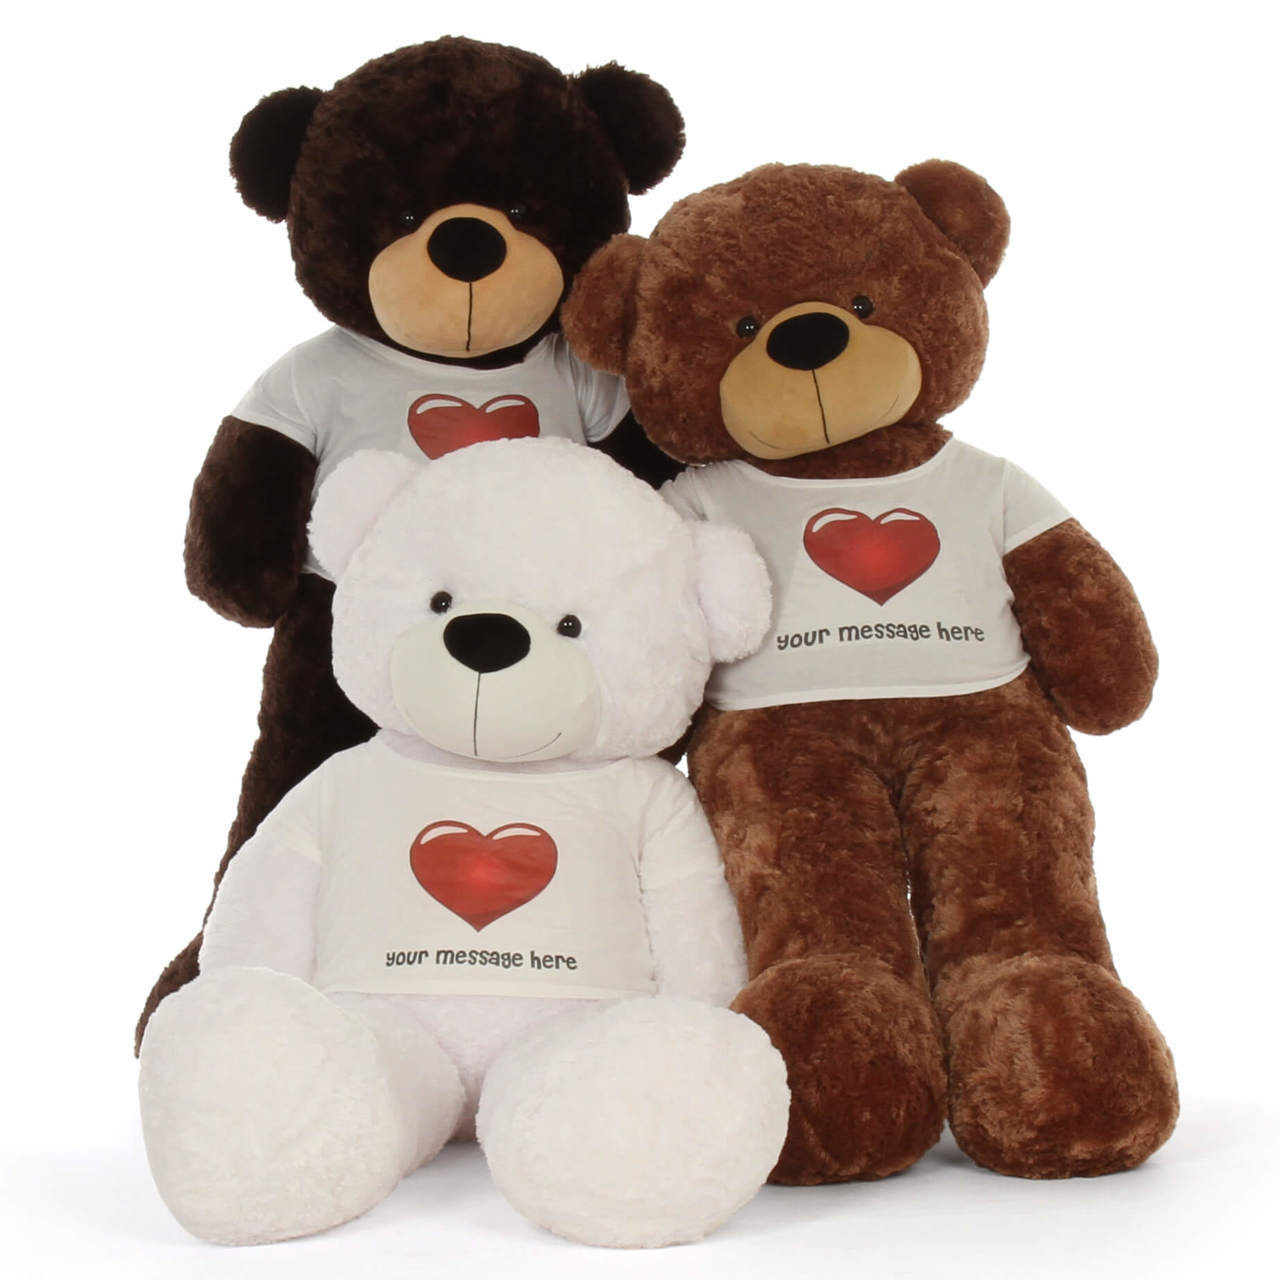 5ft life size Personalized White Chocolate Mocha Teddy Bear Cuddles in Red Heart Shirt